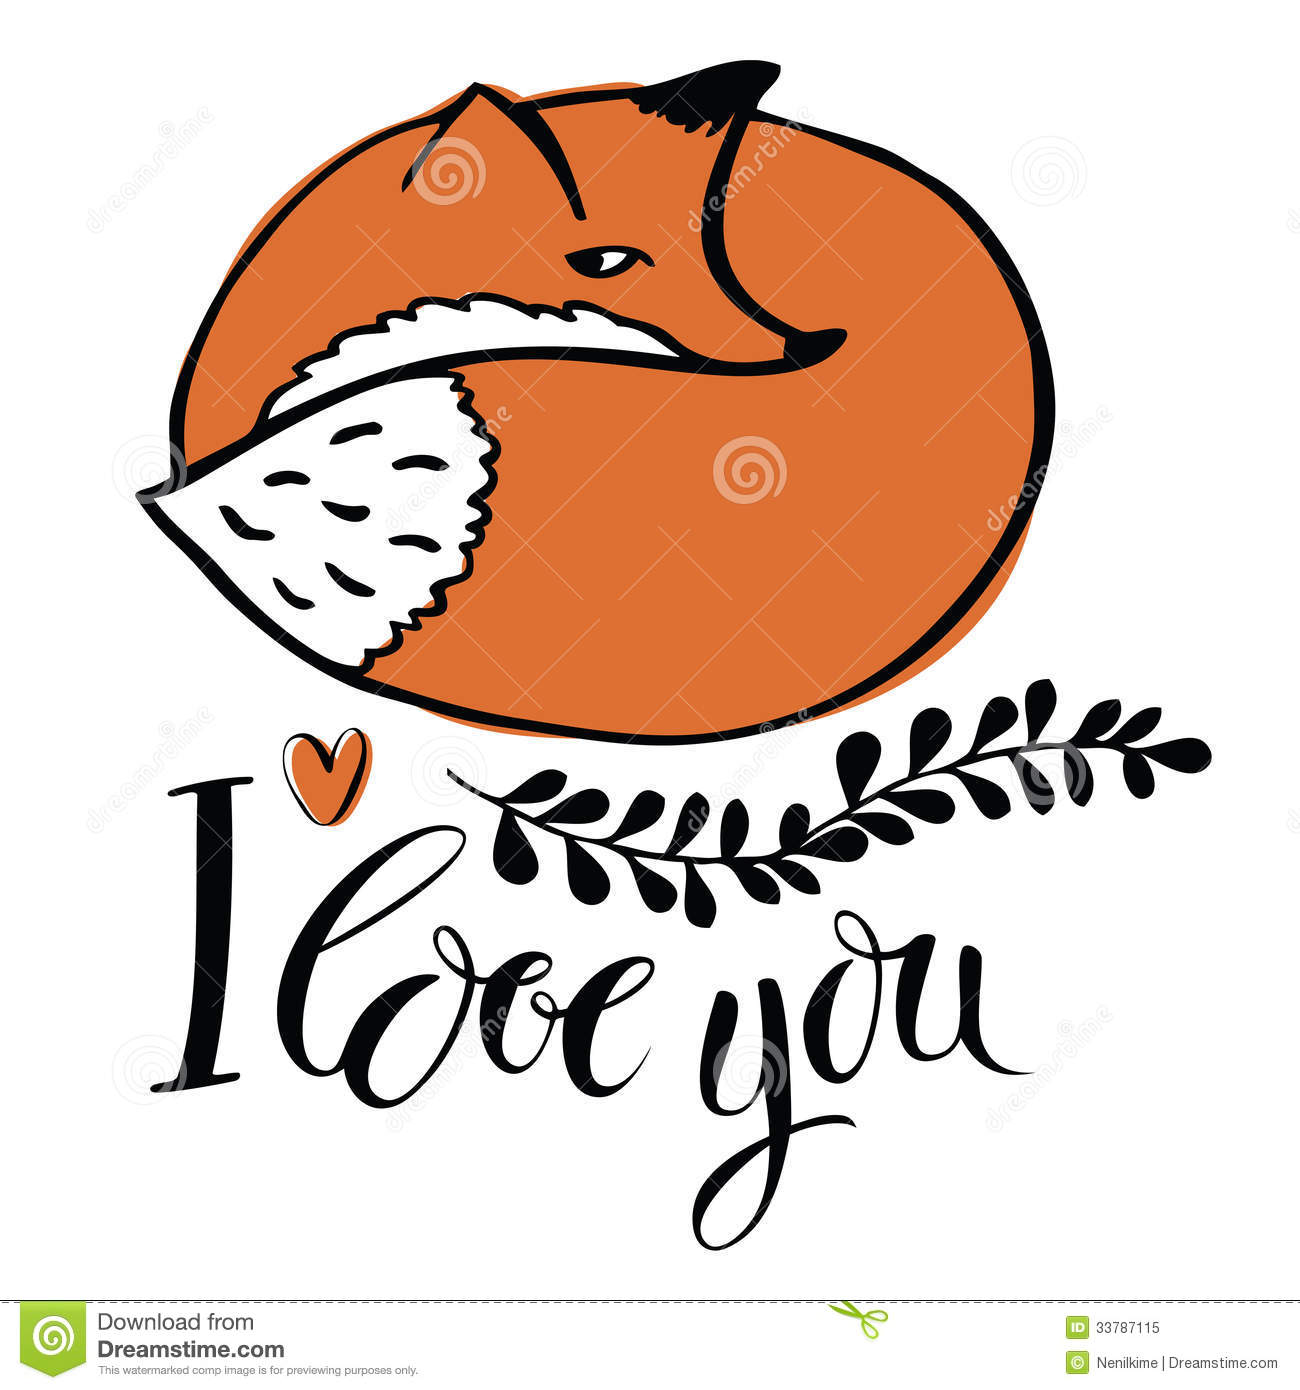 Love You. Card With The Fox Royalty Free Stock Photo - Image ...: dreamstime.com/royalty-free-stock-photo-i-love-you-card-fox-red...